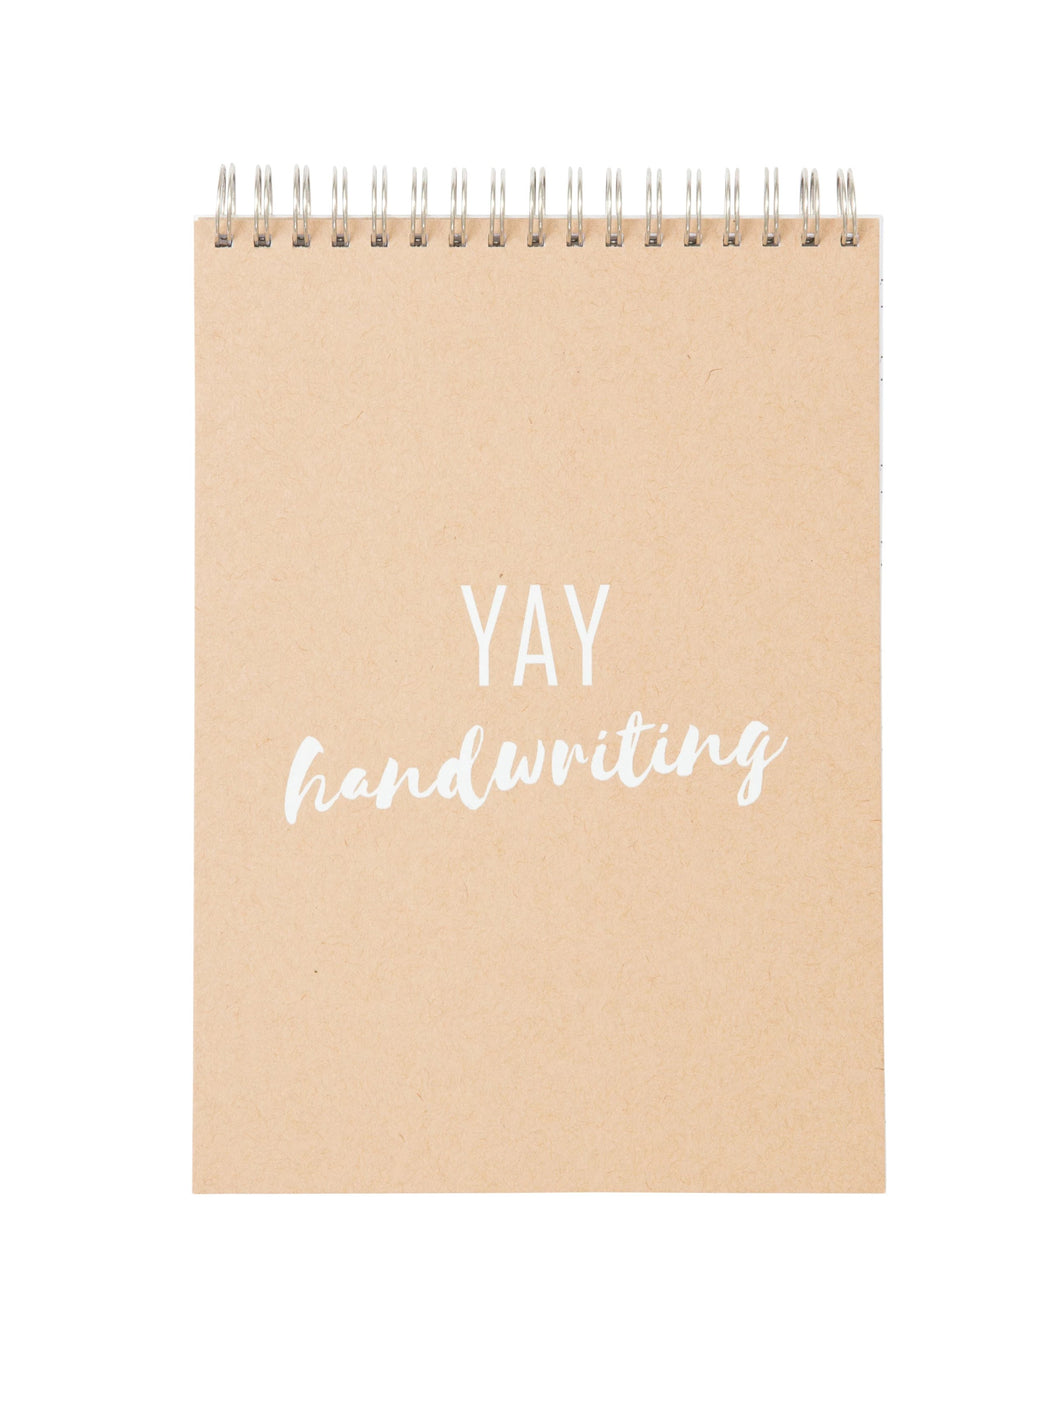 Handwriting Practice Notebook (YAY Cover)